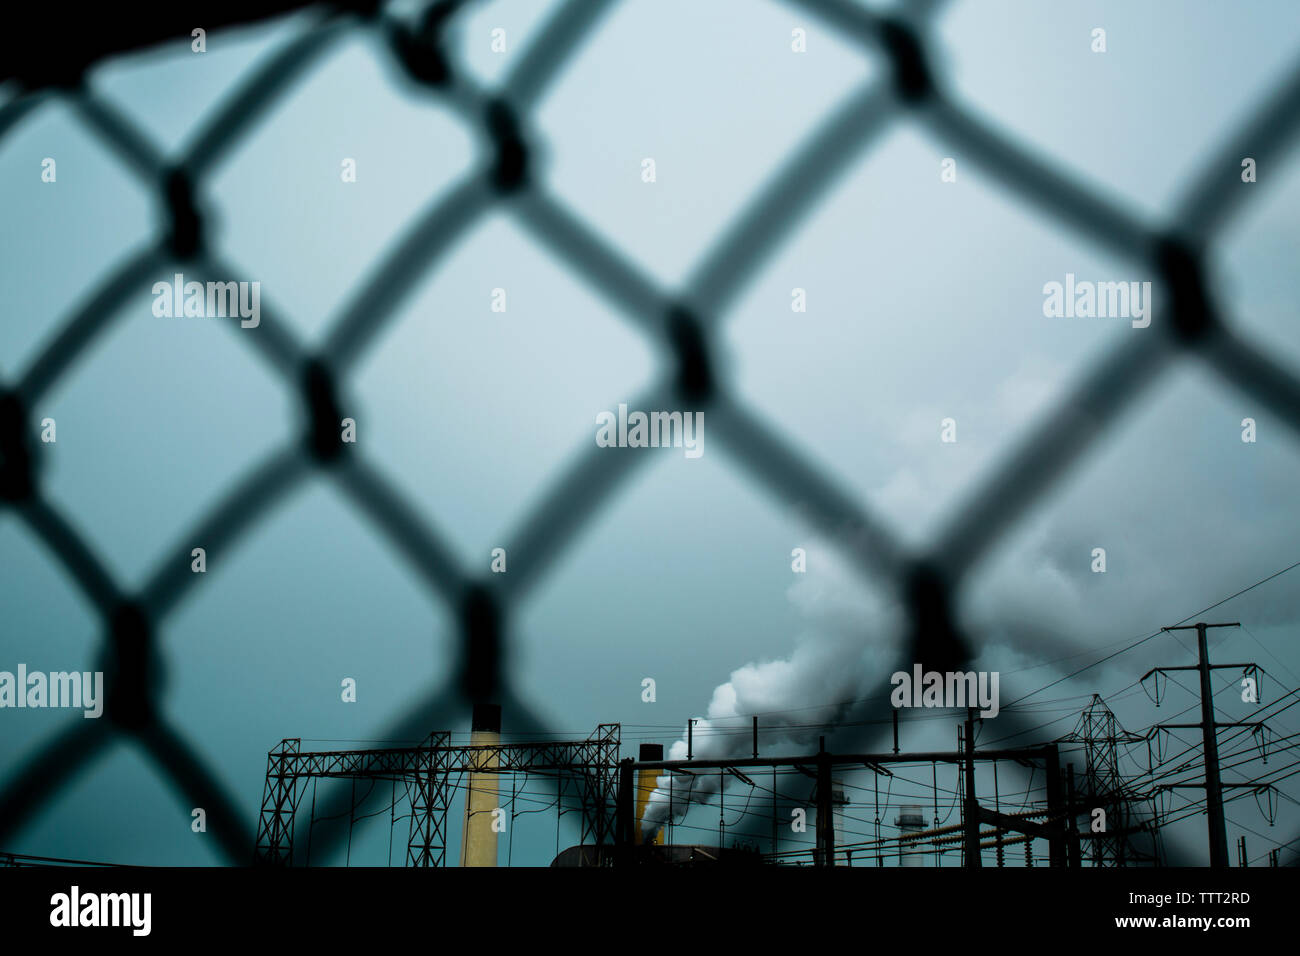 Smoke emitting from factory seen through chainlink fence against sky Stock Photo